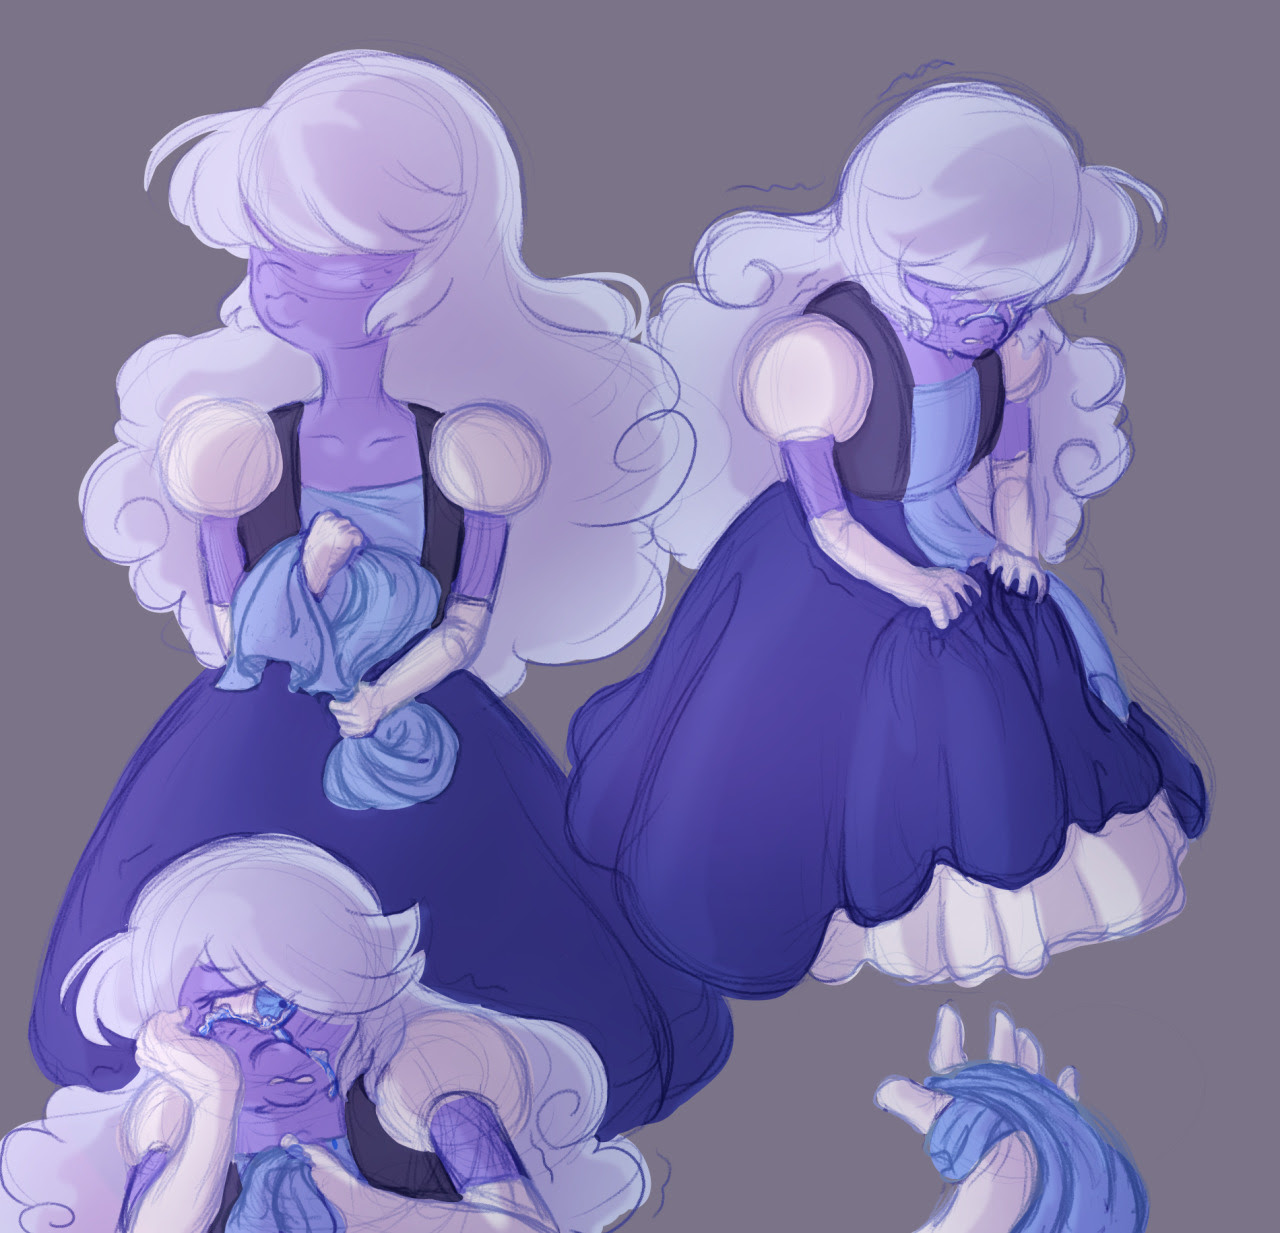 Practicing how fabric folds and introducing a Sapph headcanon in one go! I like to think she fiddles with her dress/fabric in general when she's stressed. It was probably fairly prominent after she...